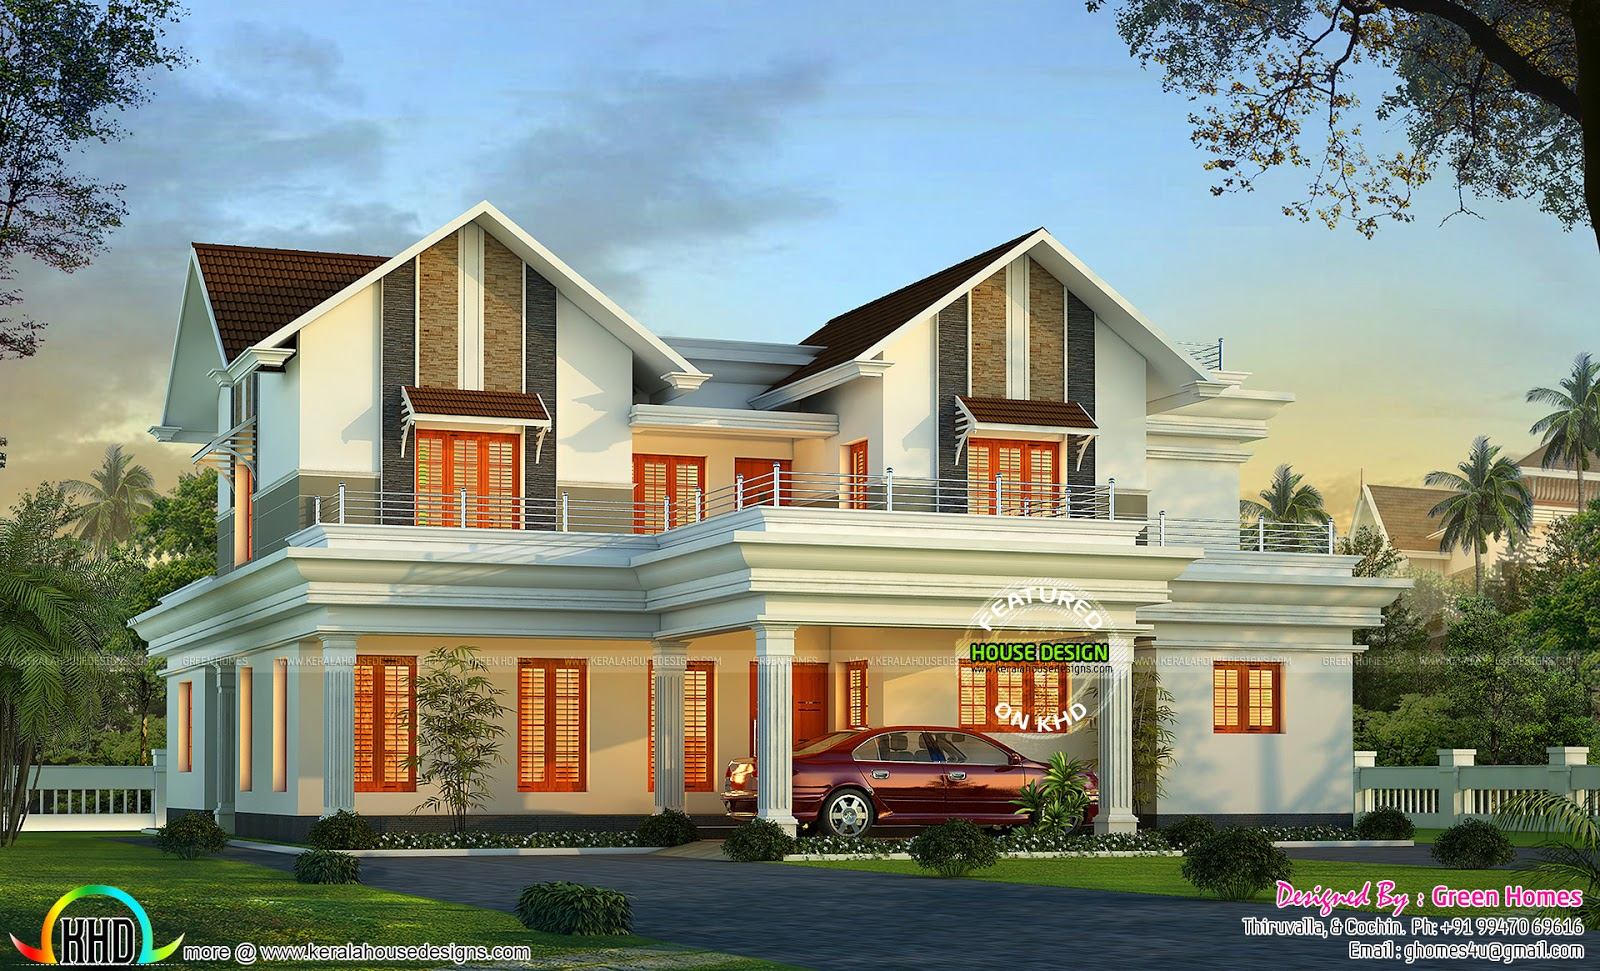 Home dream house kerala home design and floor plans for Dream home kerala